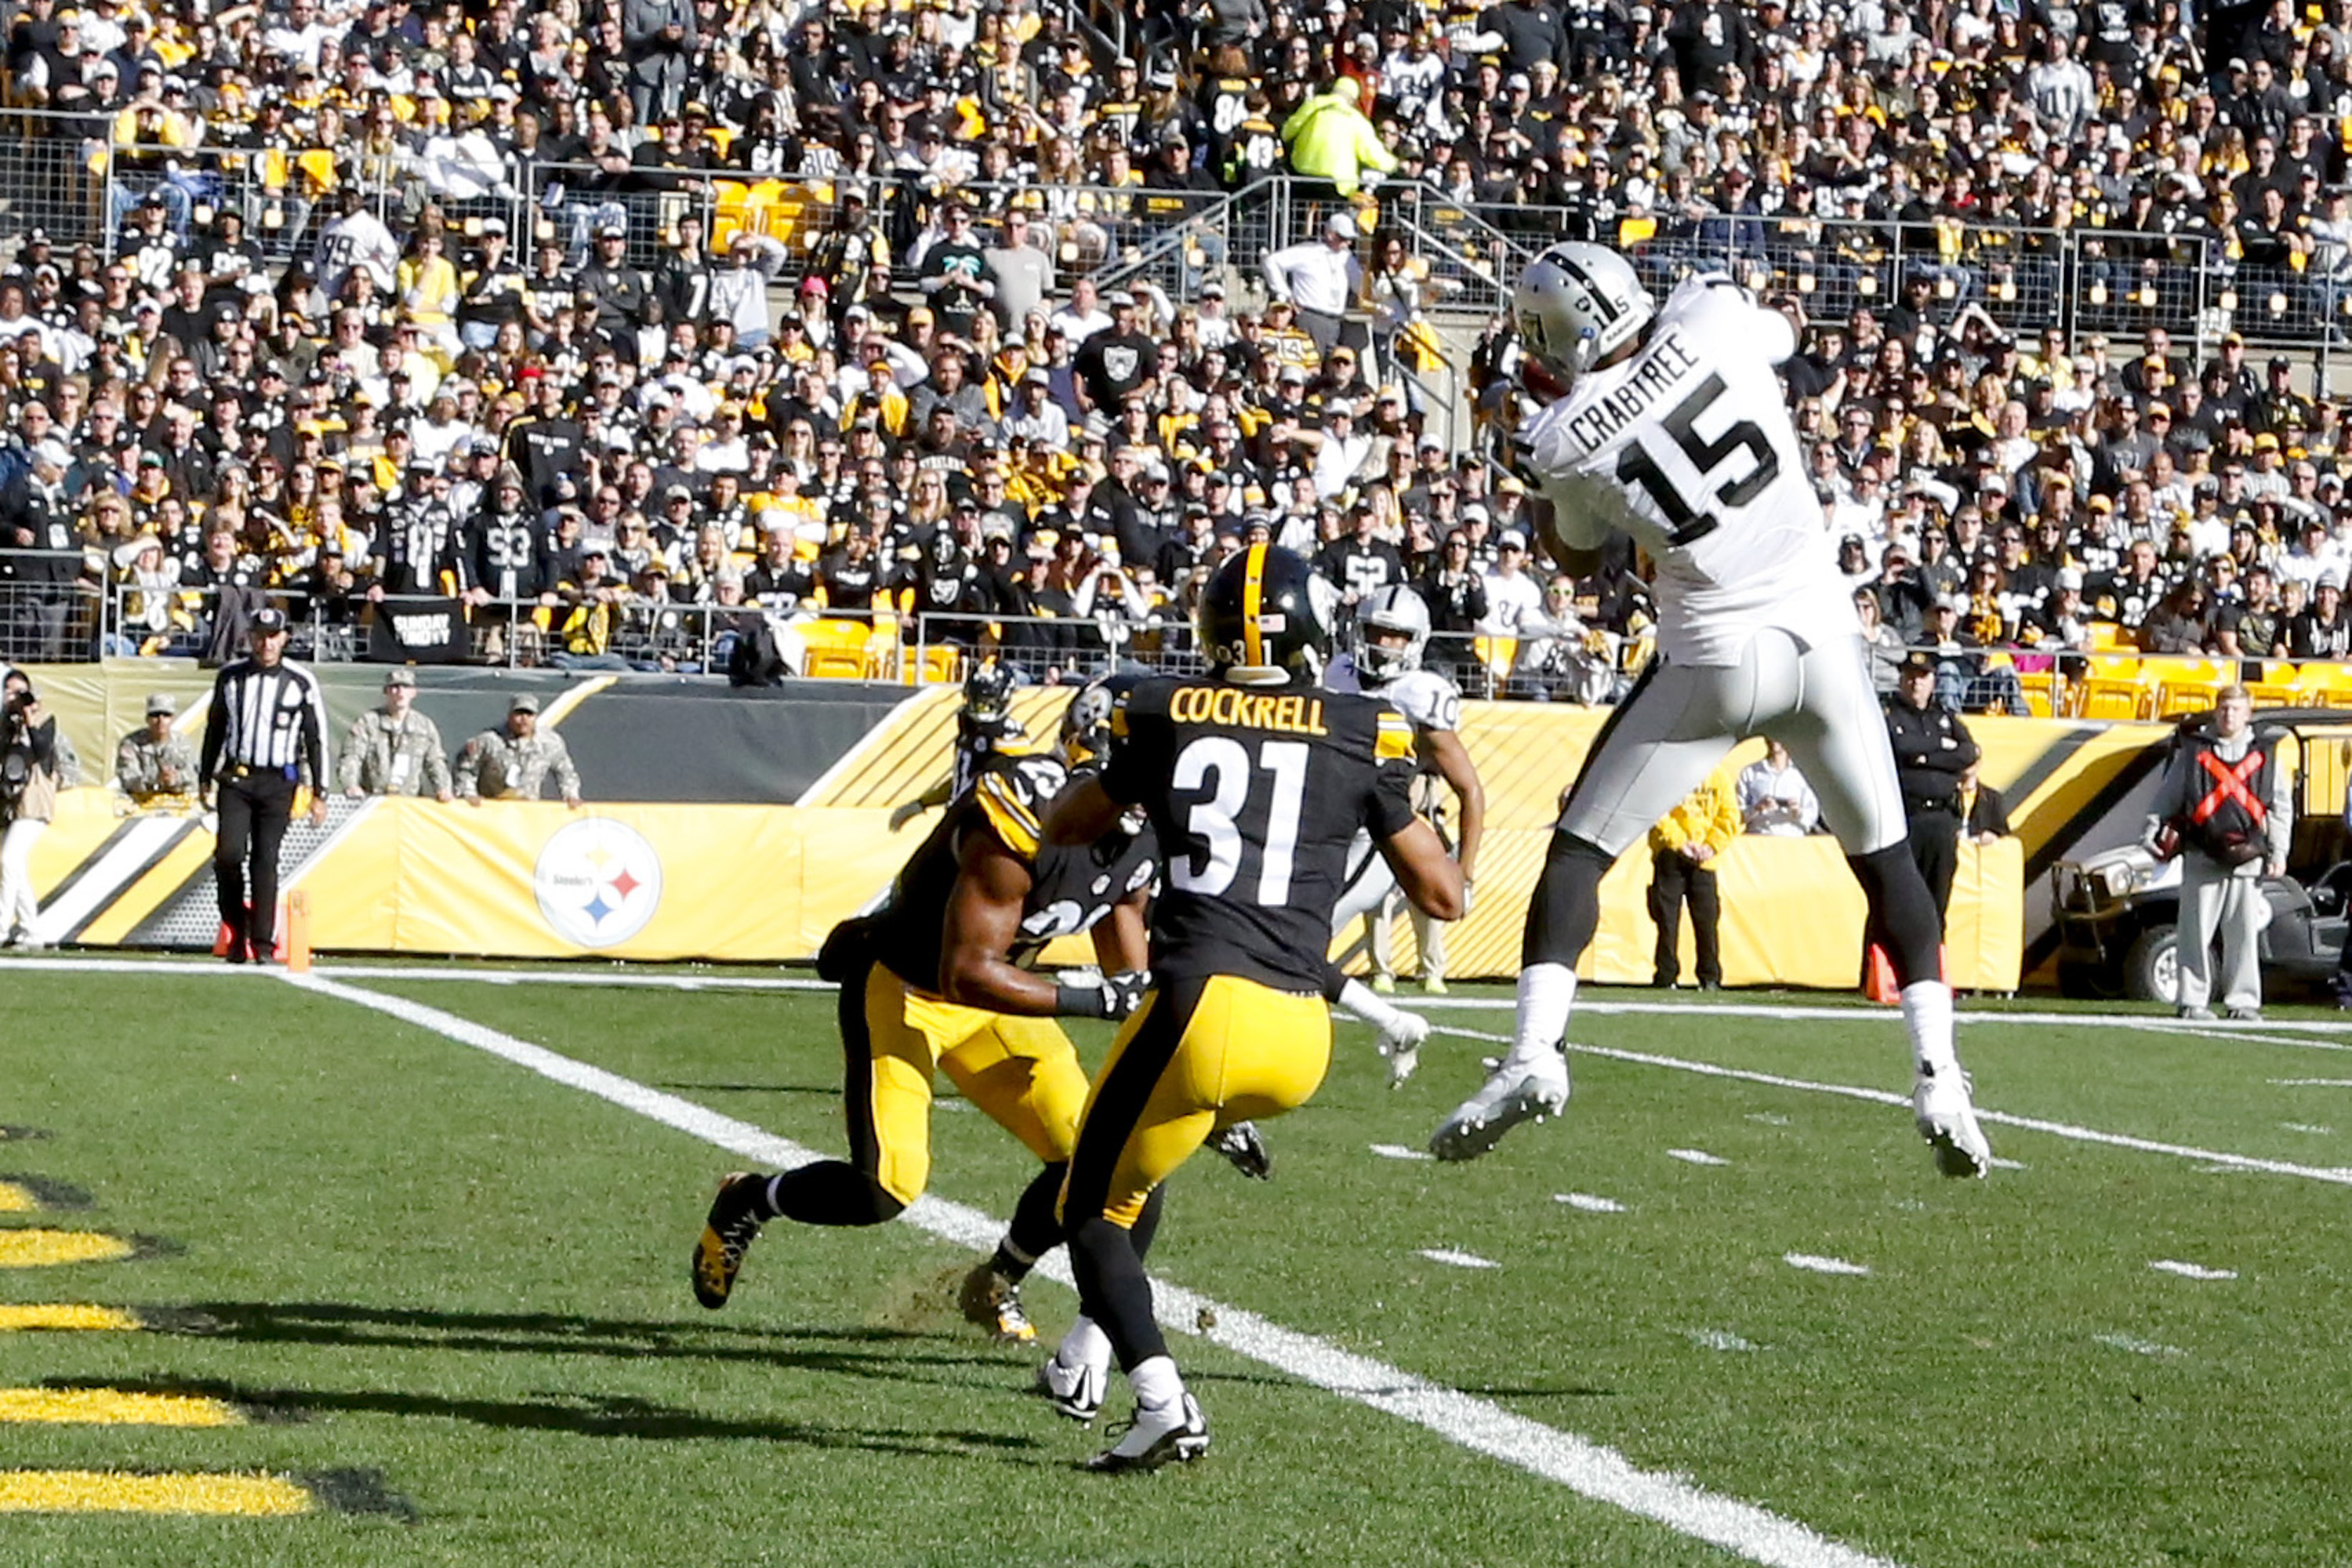 Oakland Raiders wide receiver Michael Crabtree (15) makes a touchdown catch in front of Pittsburgh Steelers defensive back Ross Cockrell (31) and free safety Mike Mitchell (23) in the first quarter of an NFL football game, Sunday, Nov. 8, 2015, in Pittsbu